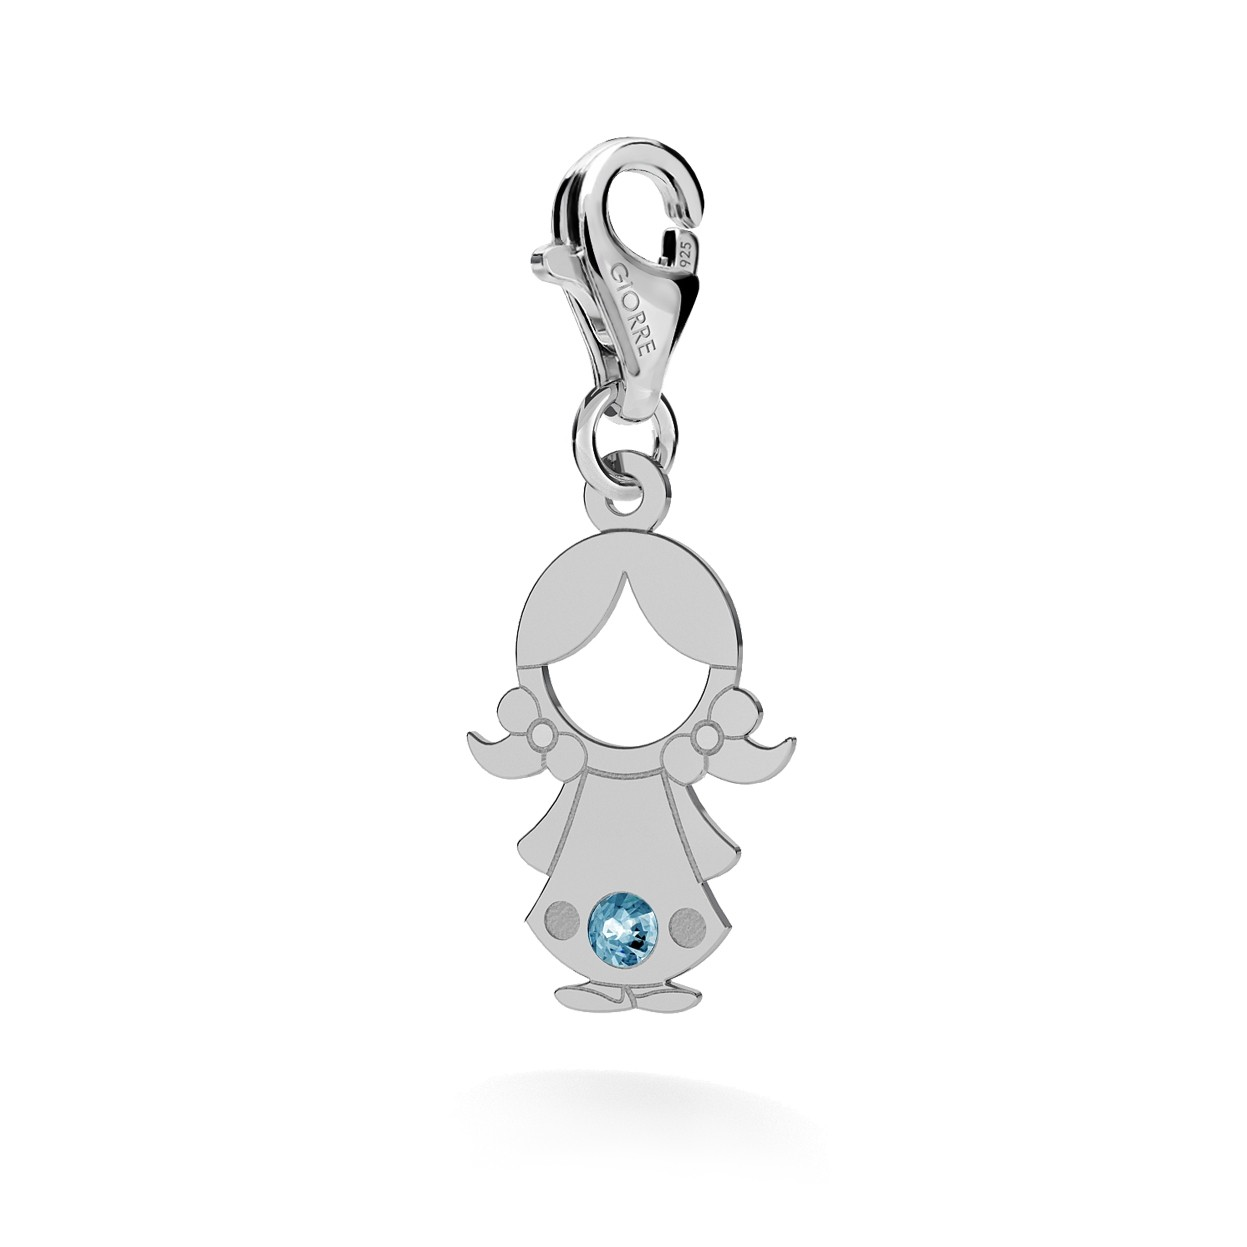 CHARM 65, GIRL, SWAROVSKI 2038 SS 6 HF CRYSTAL, SILVER 925, RHODIUM OR GOLD PLATED